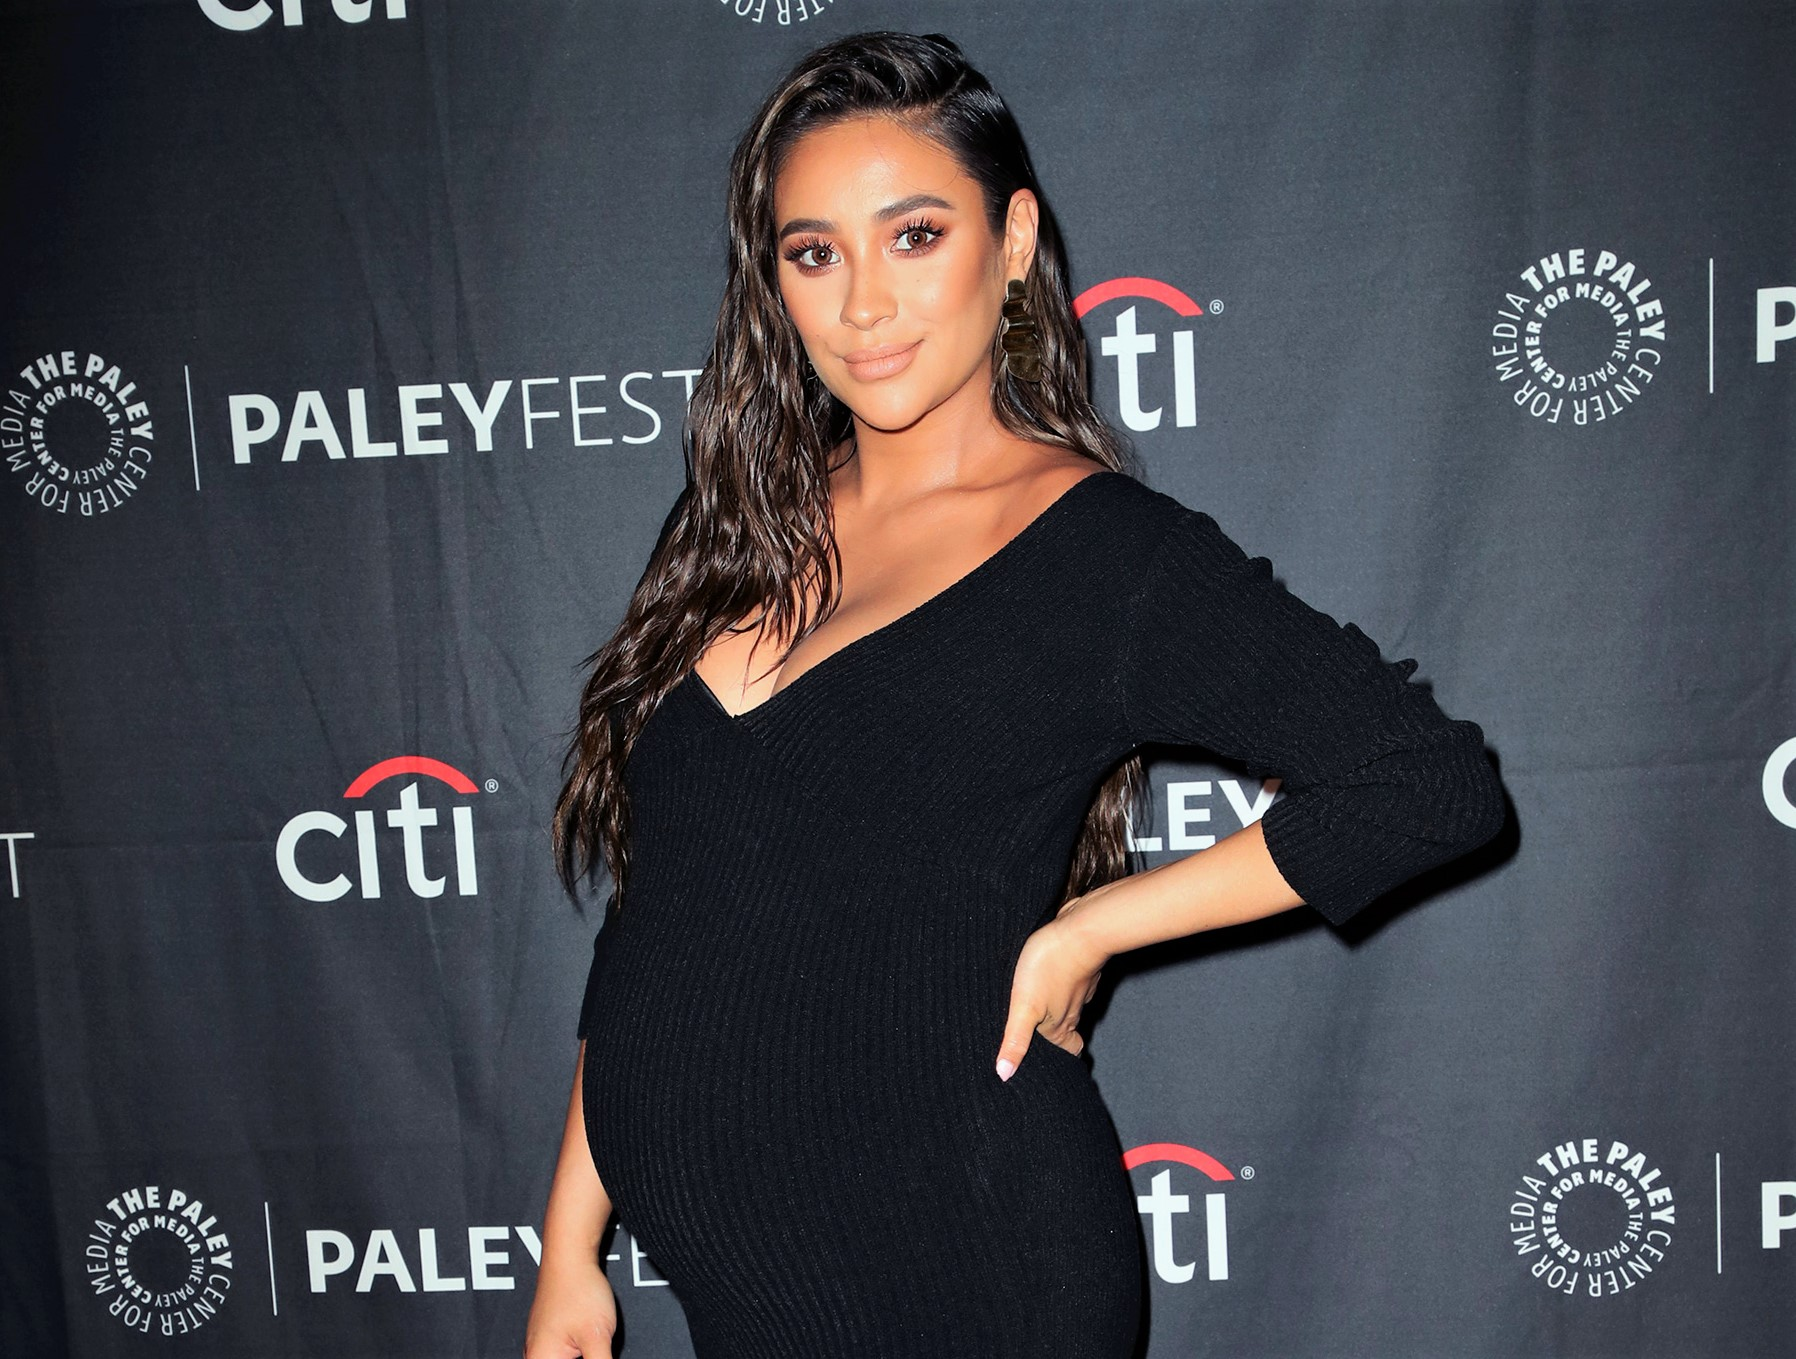 Pregnant Shay Mitchell Shows Off Baby Bump on Red Carpet, Says She'll Take 'No Maternity Leave'